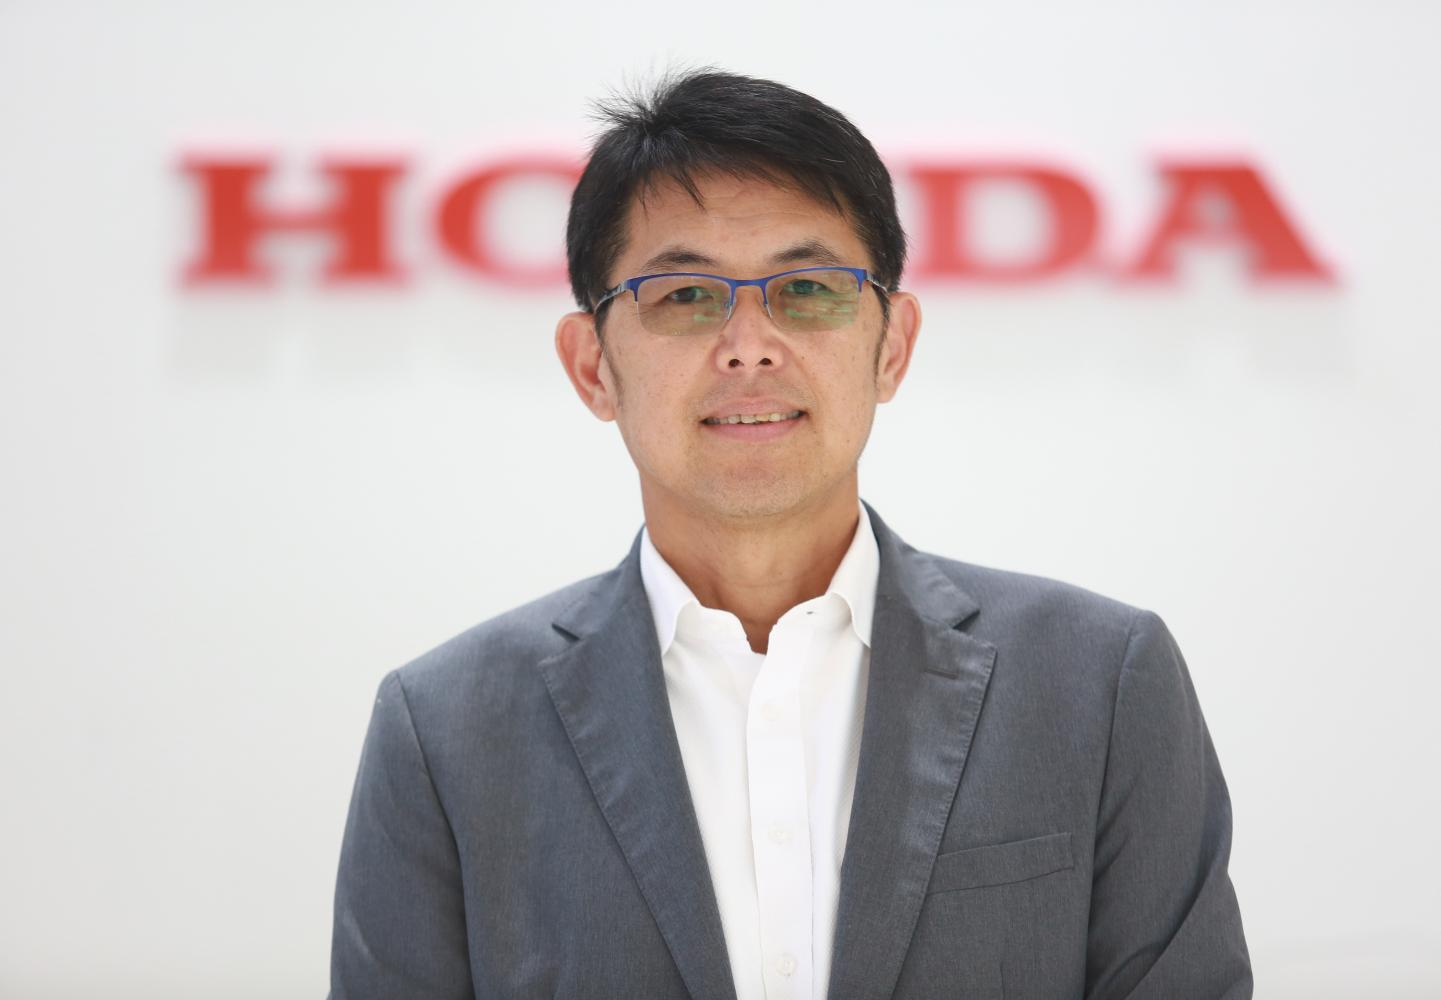 Mr Suchart joined AP Honda in 1986. He says he was glad to be a part of the company for over 30 years.